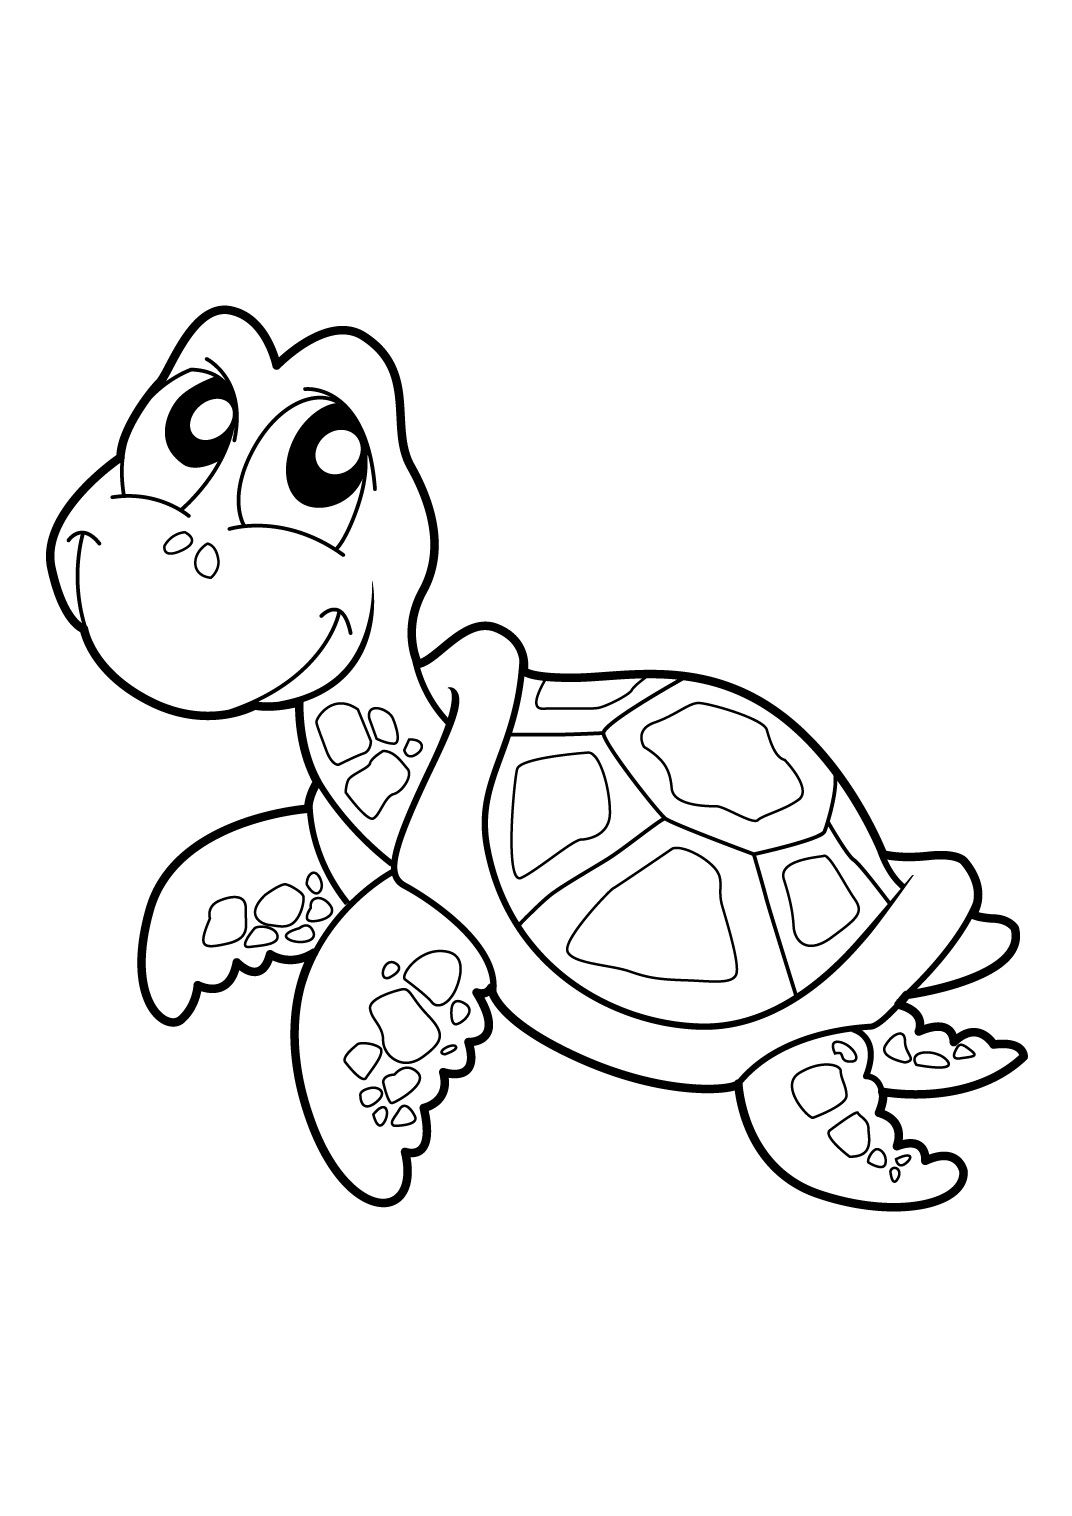 Tortue coloring pages pinterest coloriage coloriage tortue et tortue - Coloriage tortue ...